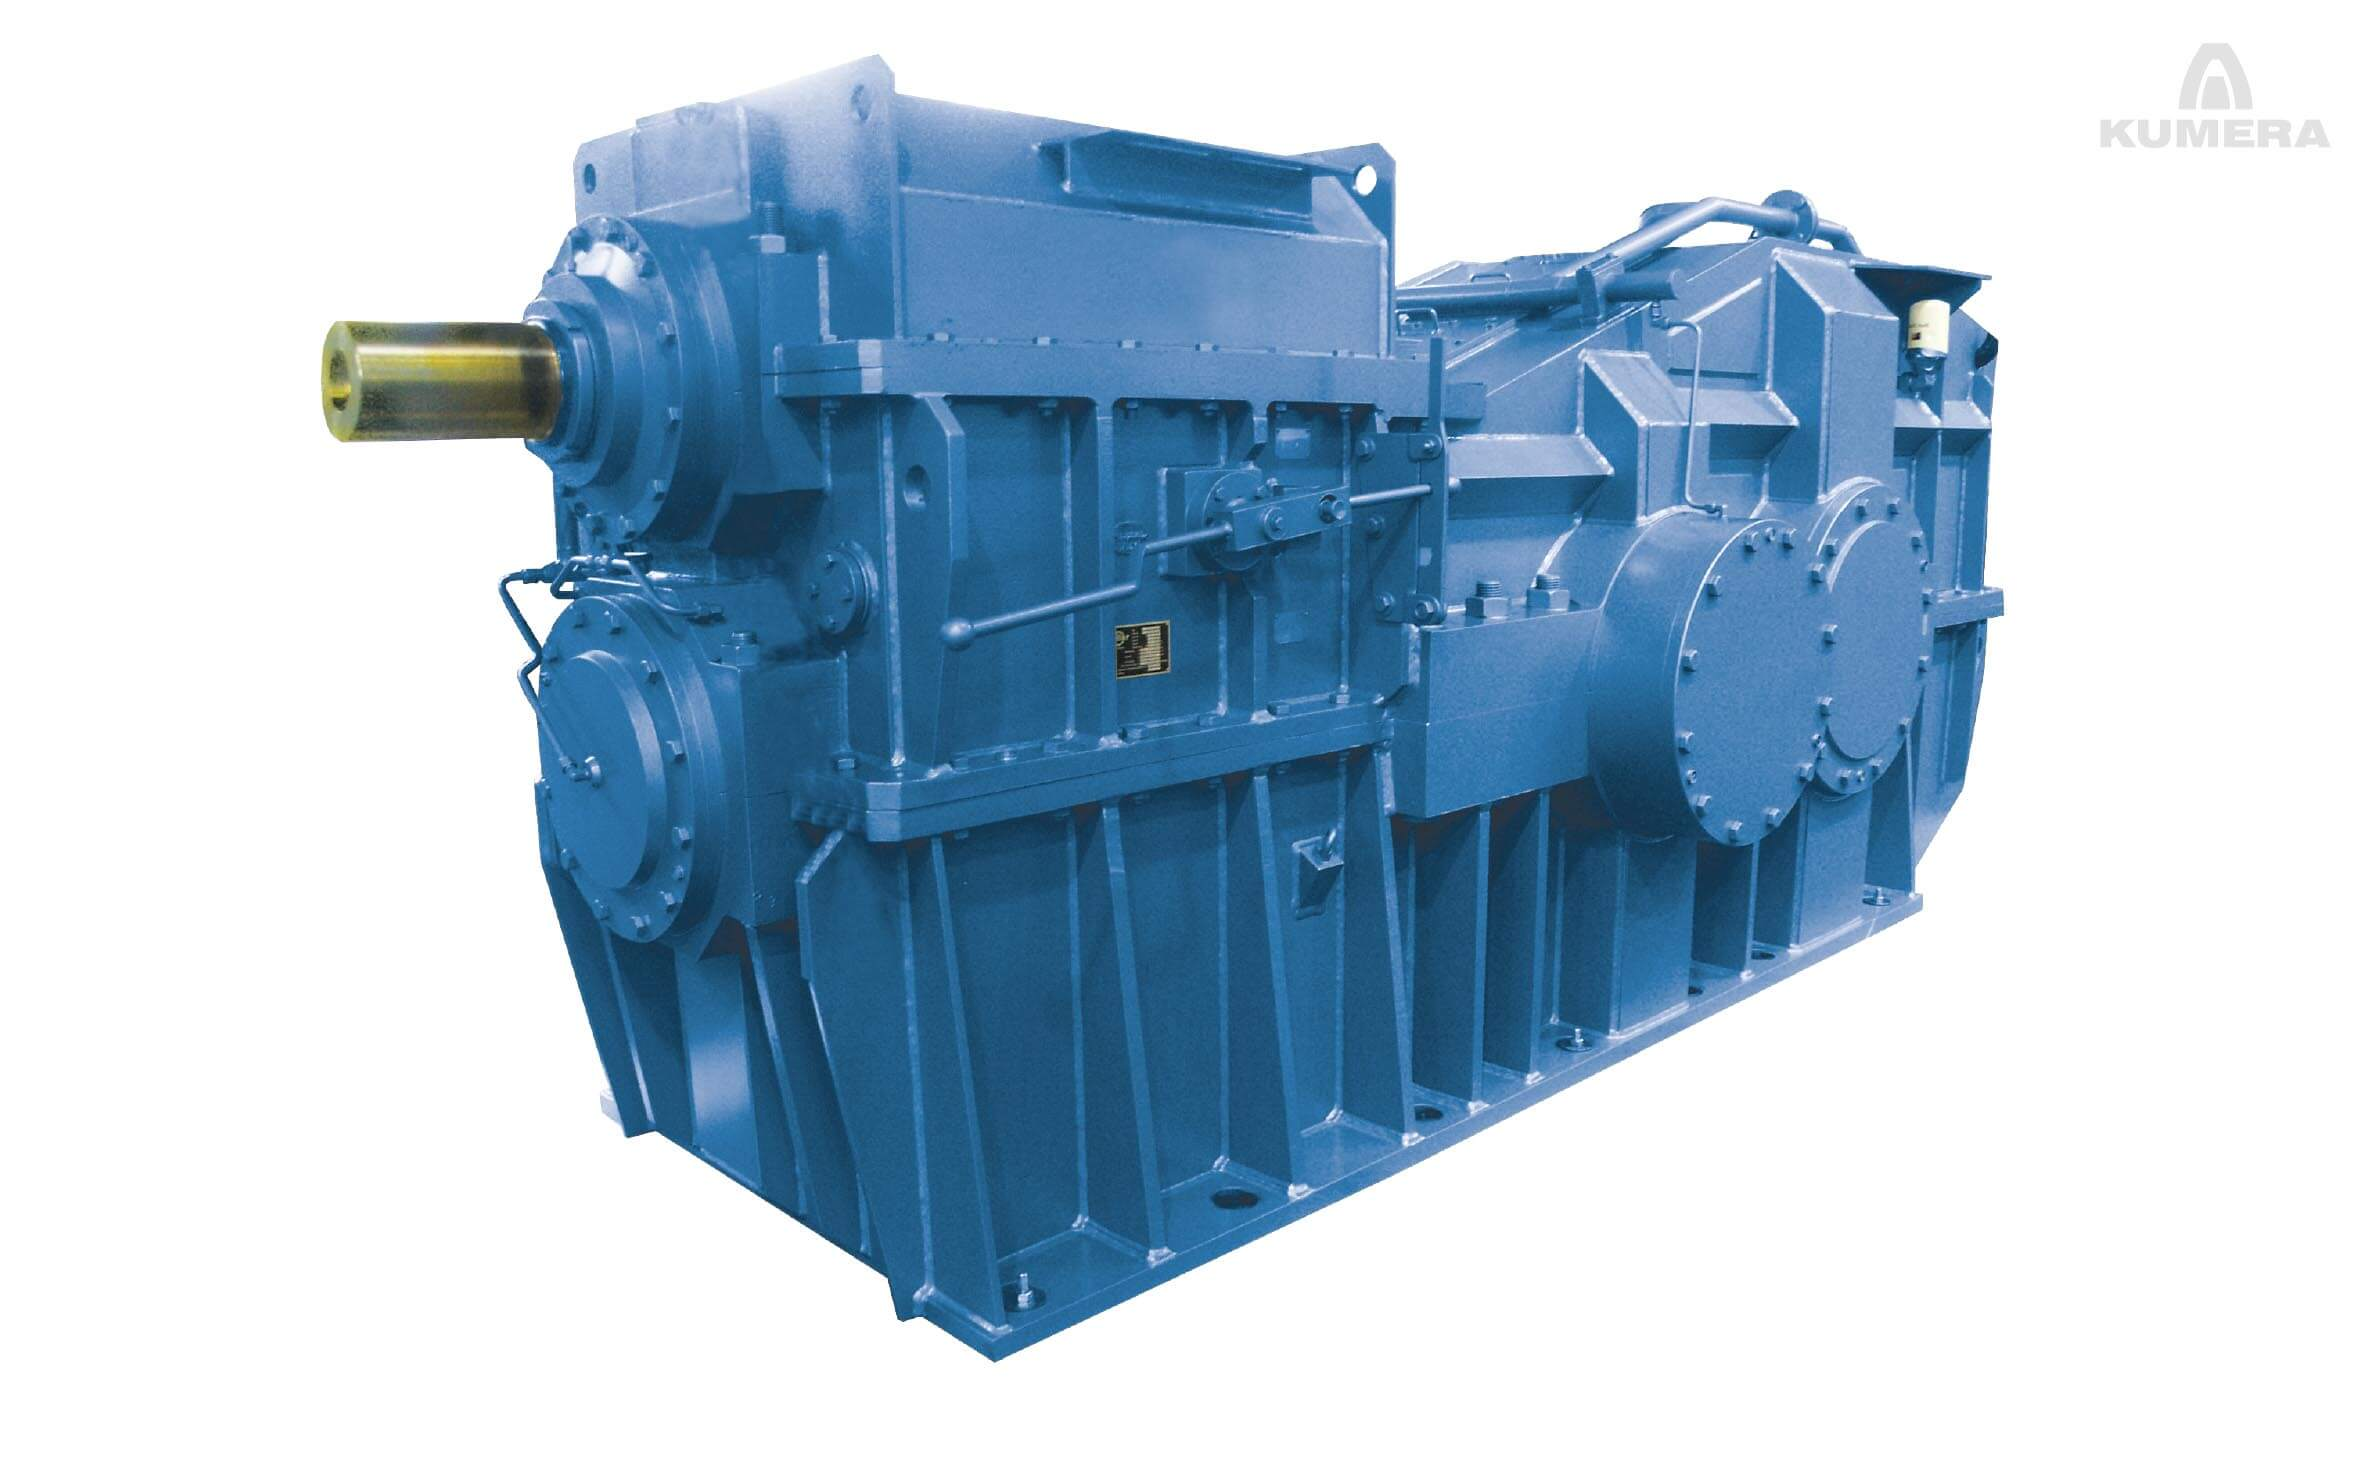 Kumera Drives for Mining & Minerals Processing. Kumera designs and manufactures a full range of gear units for critical mining applications, such as conveying, mixing, agitating and drying.